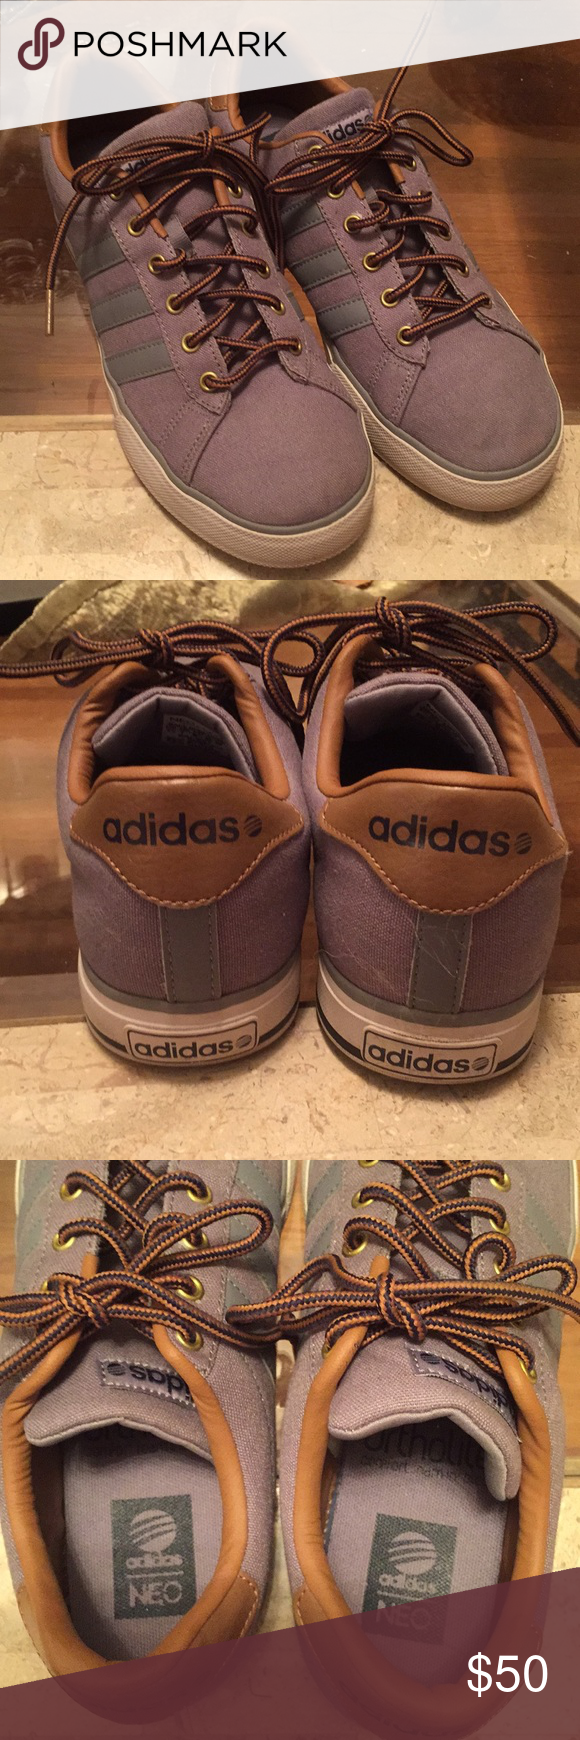 Adidas Neo athleisure shoes | Athleisure shoes, Adidas neo, Brown ...